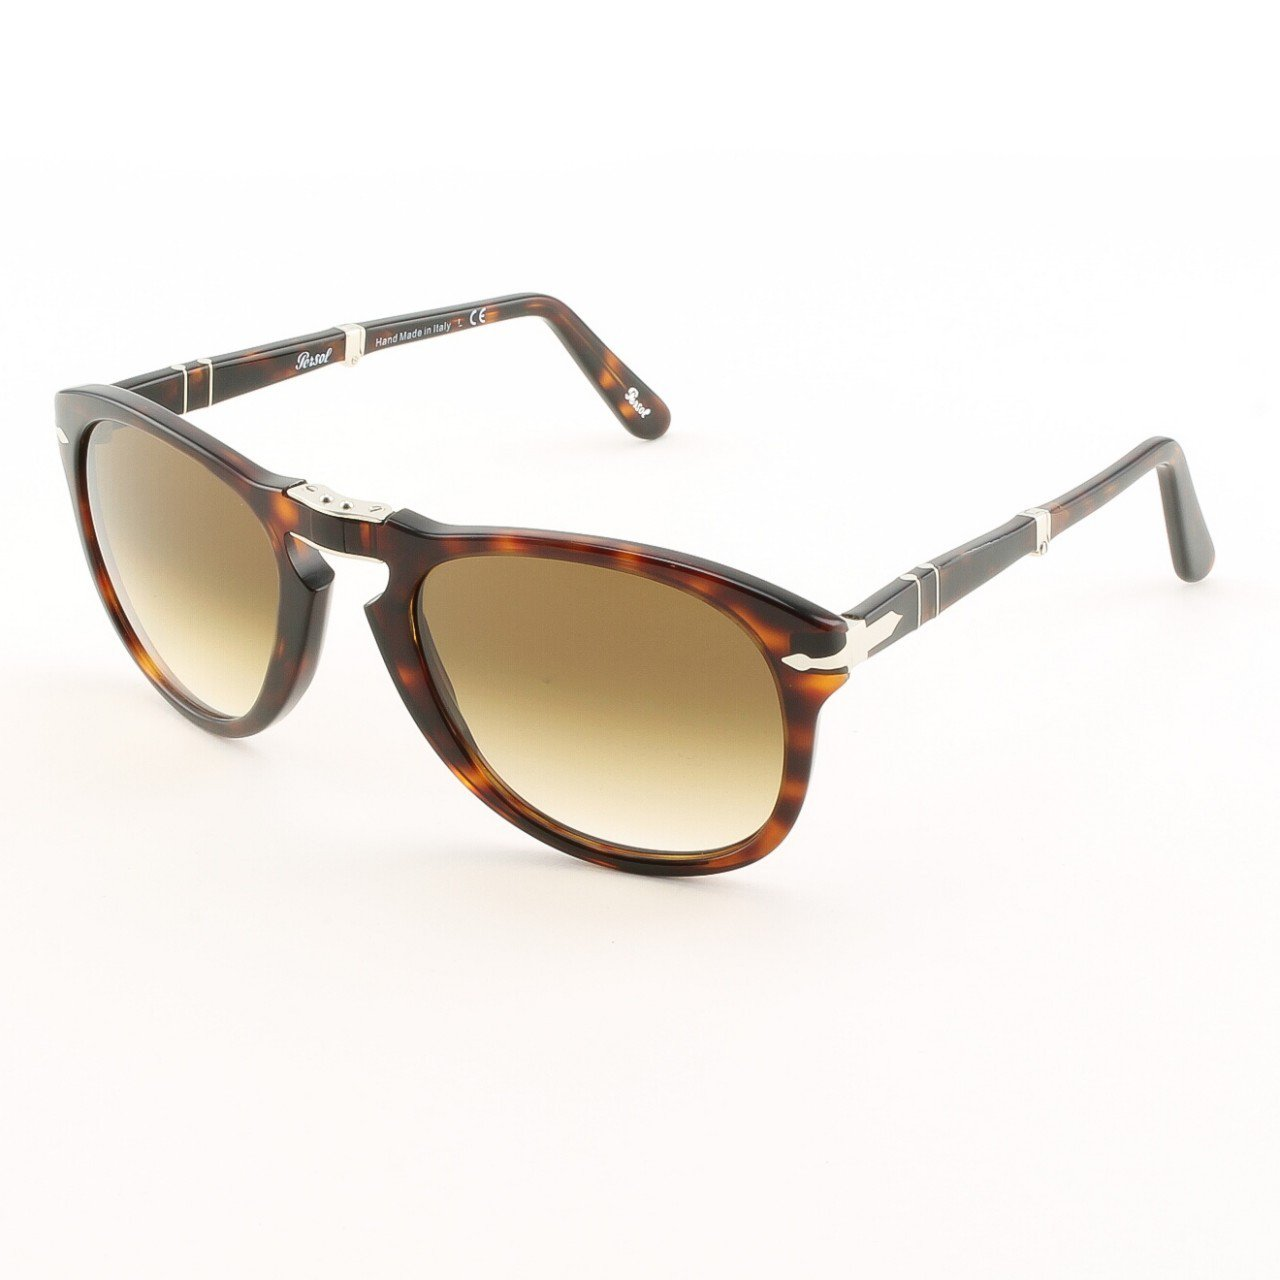 Persol PO0714 24/51 54mm Havana Sunglasses with Brown Faded Lenses